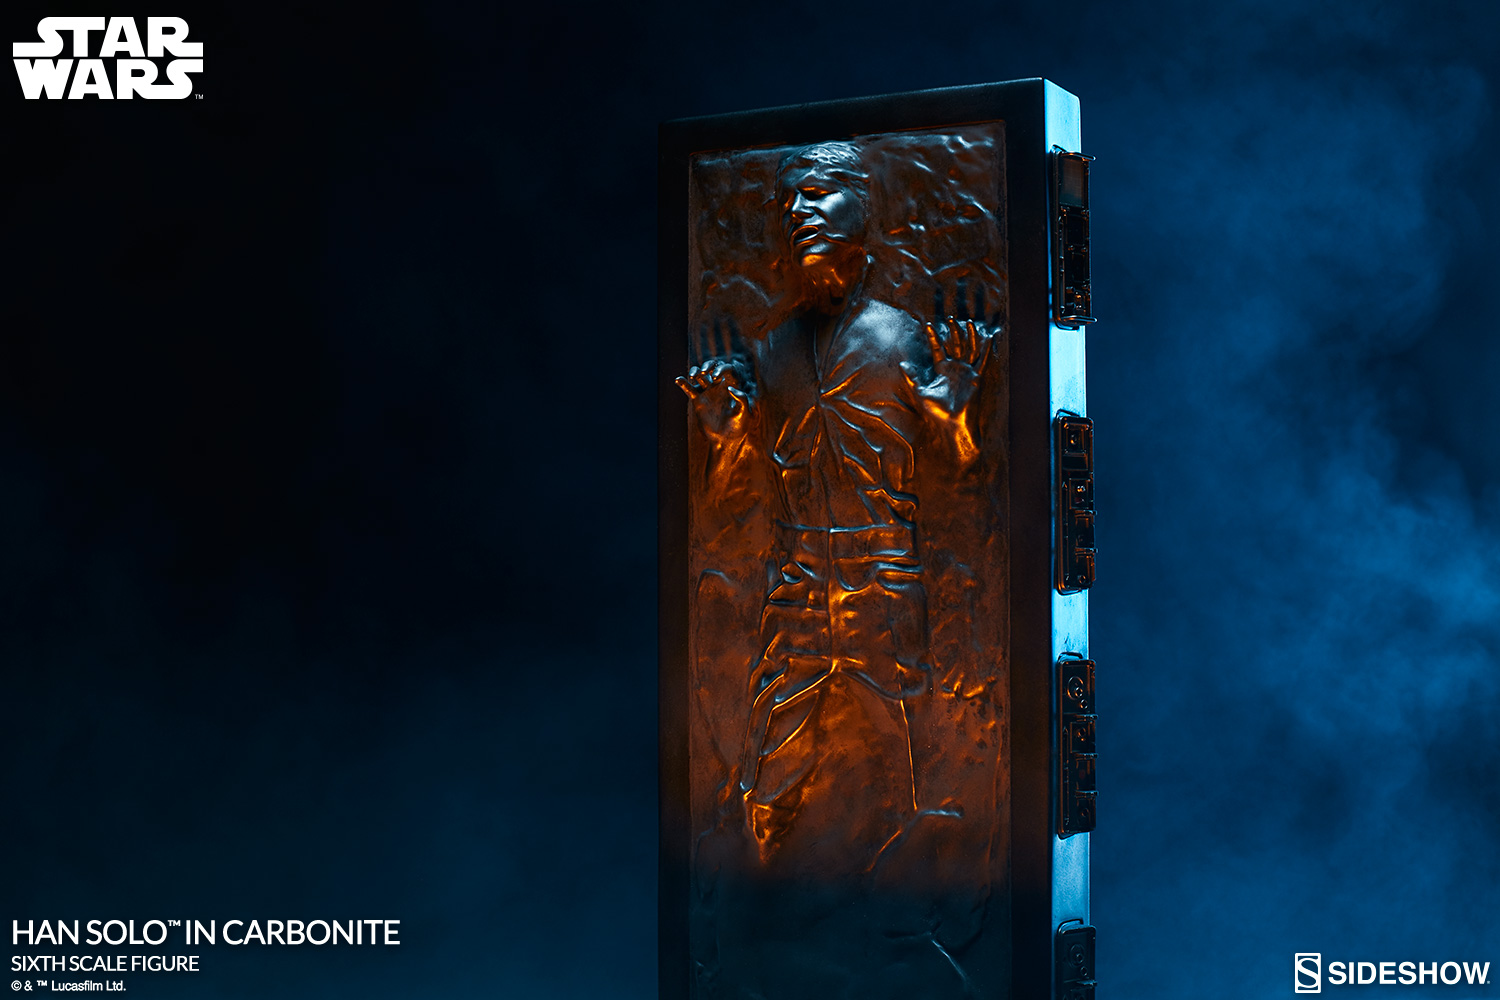 star-wars-han-solo-in-carbonite-sixth-scale-100310-03